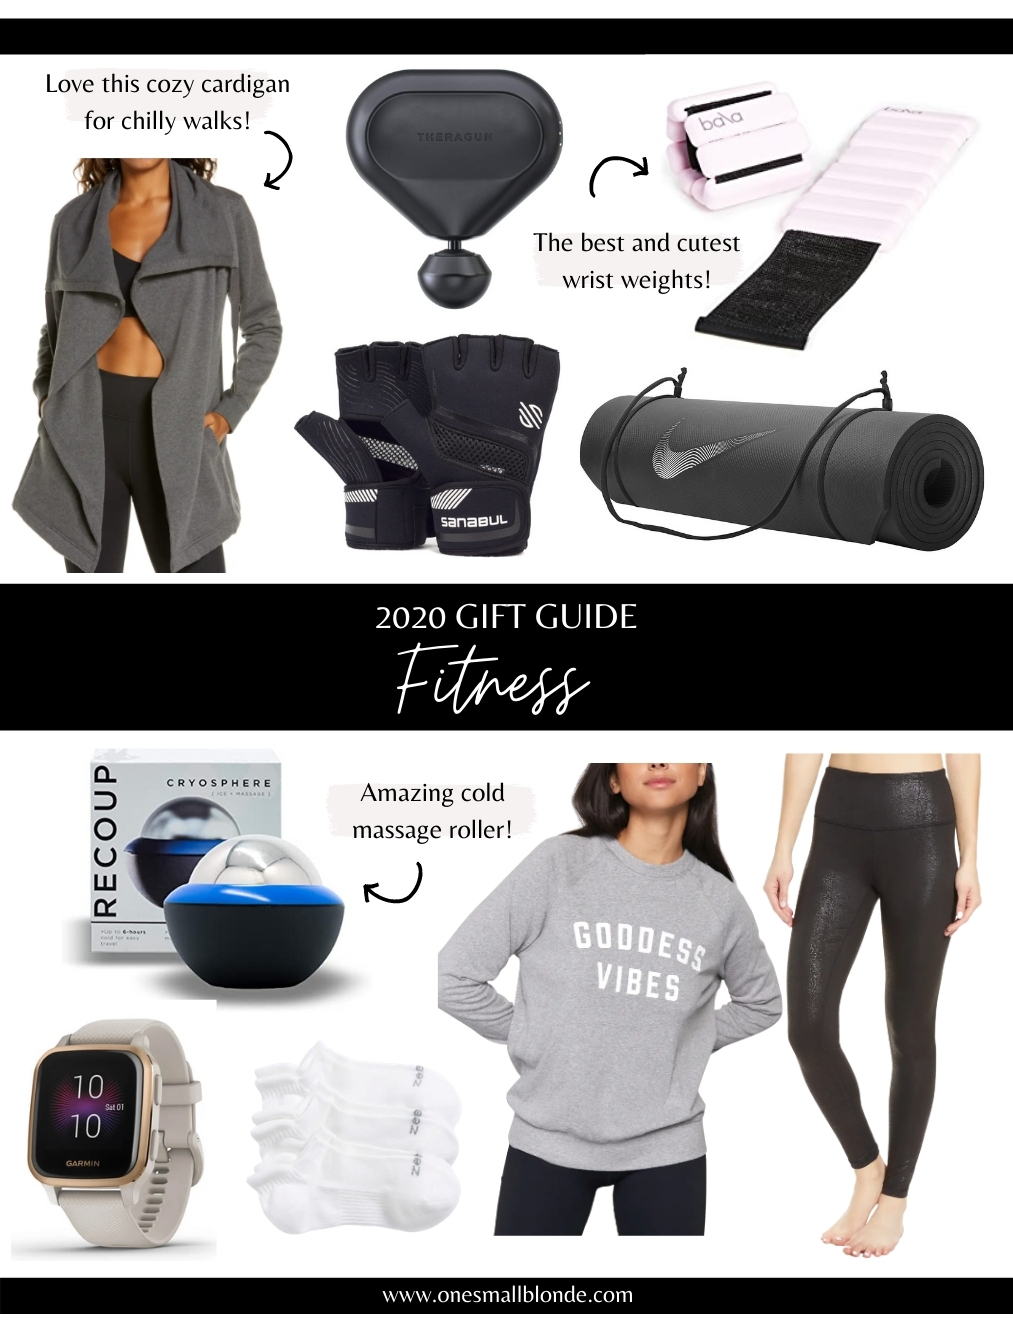 2020 GIFT GUIDE: FITNESS